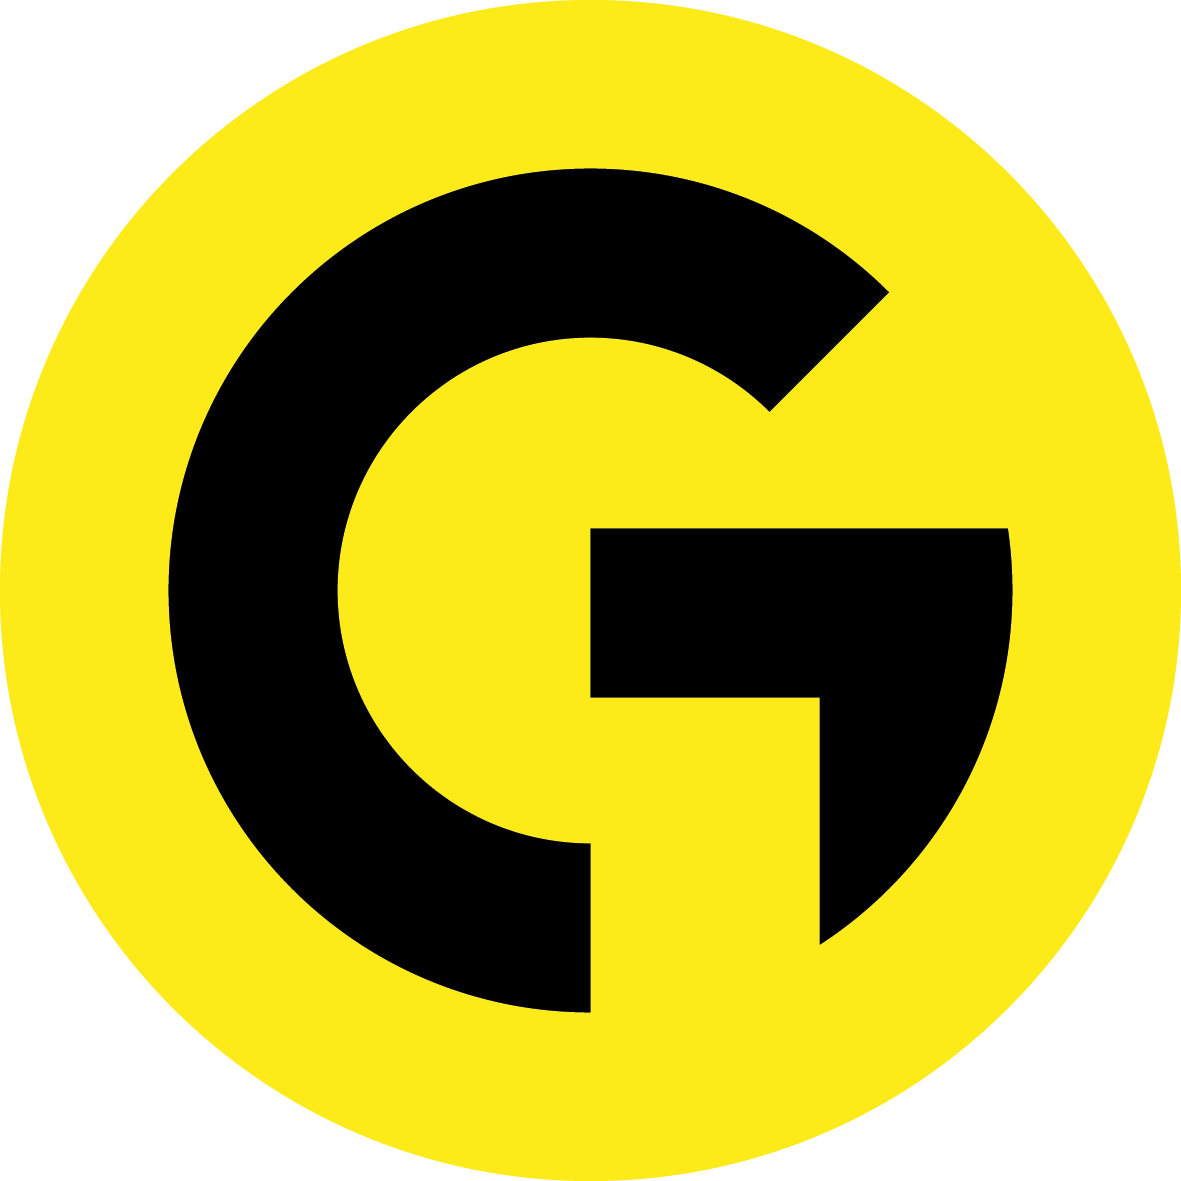 MP_Gemballa_logo_Yellow.png